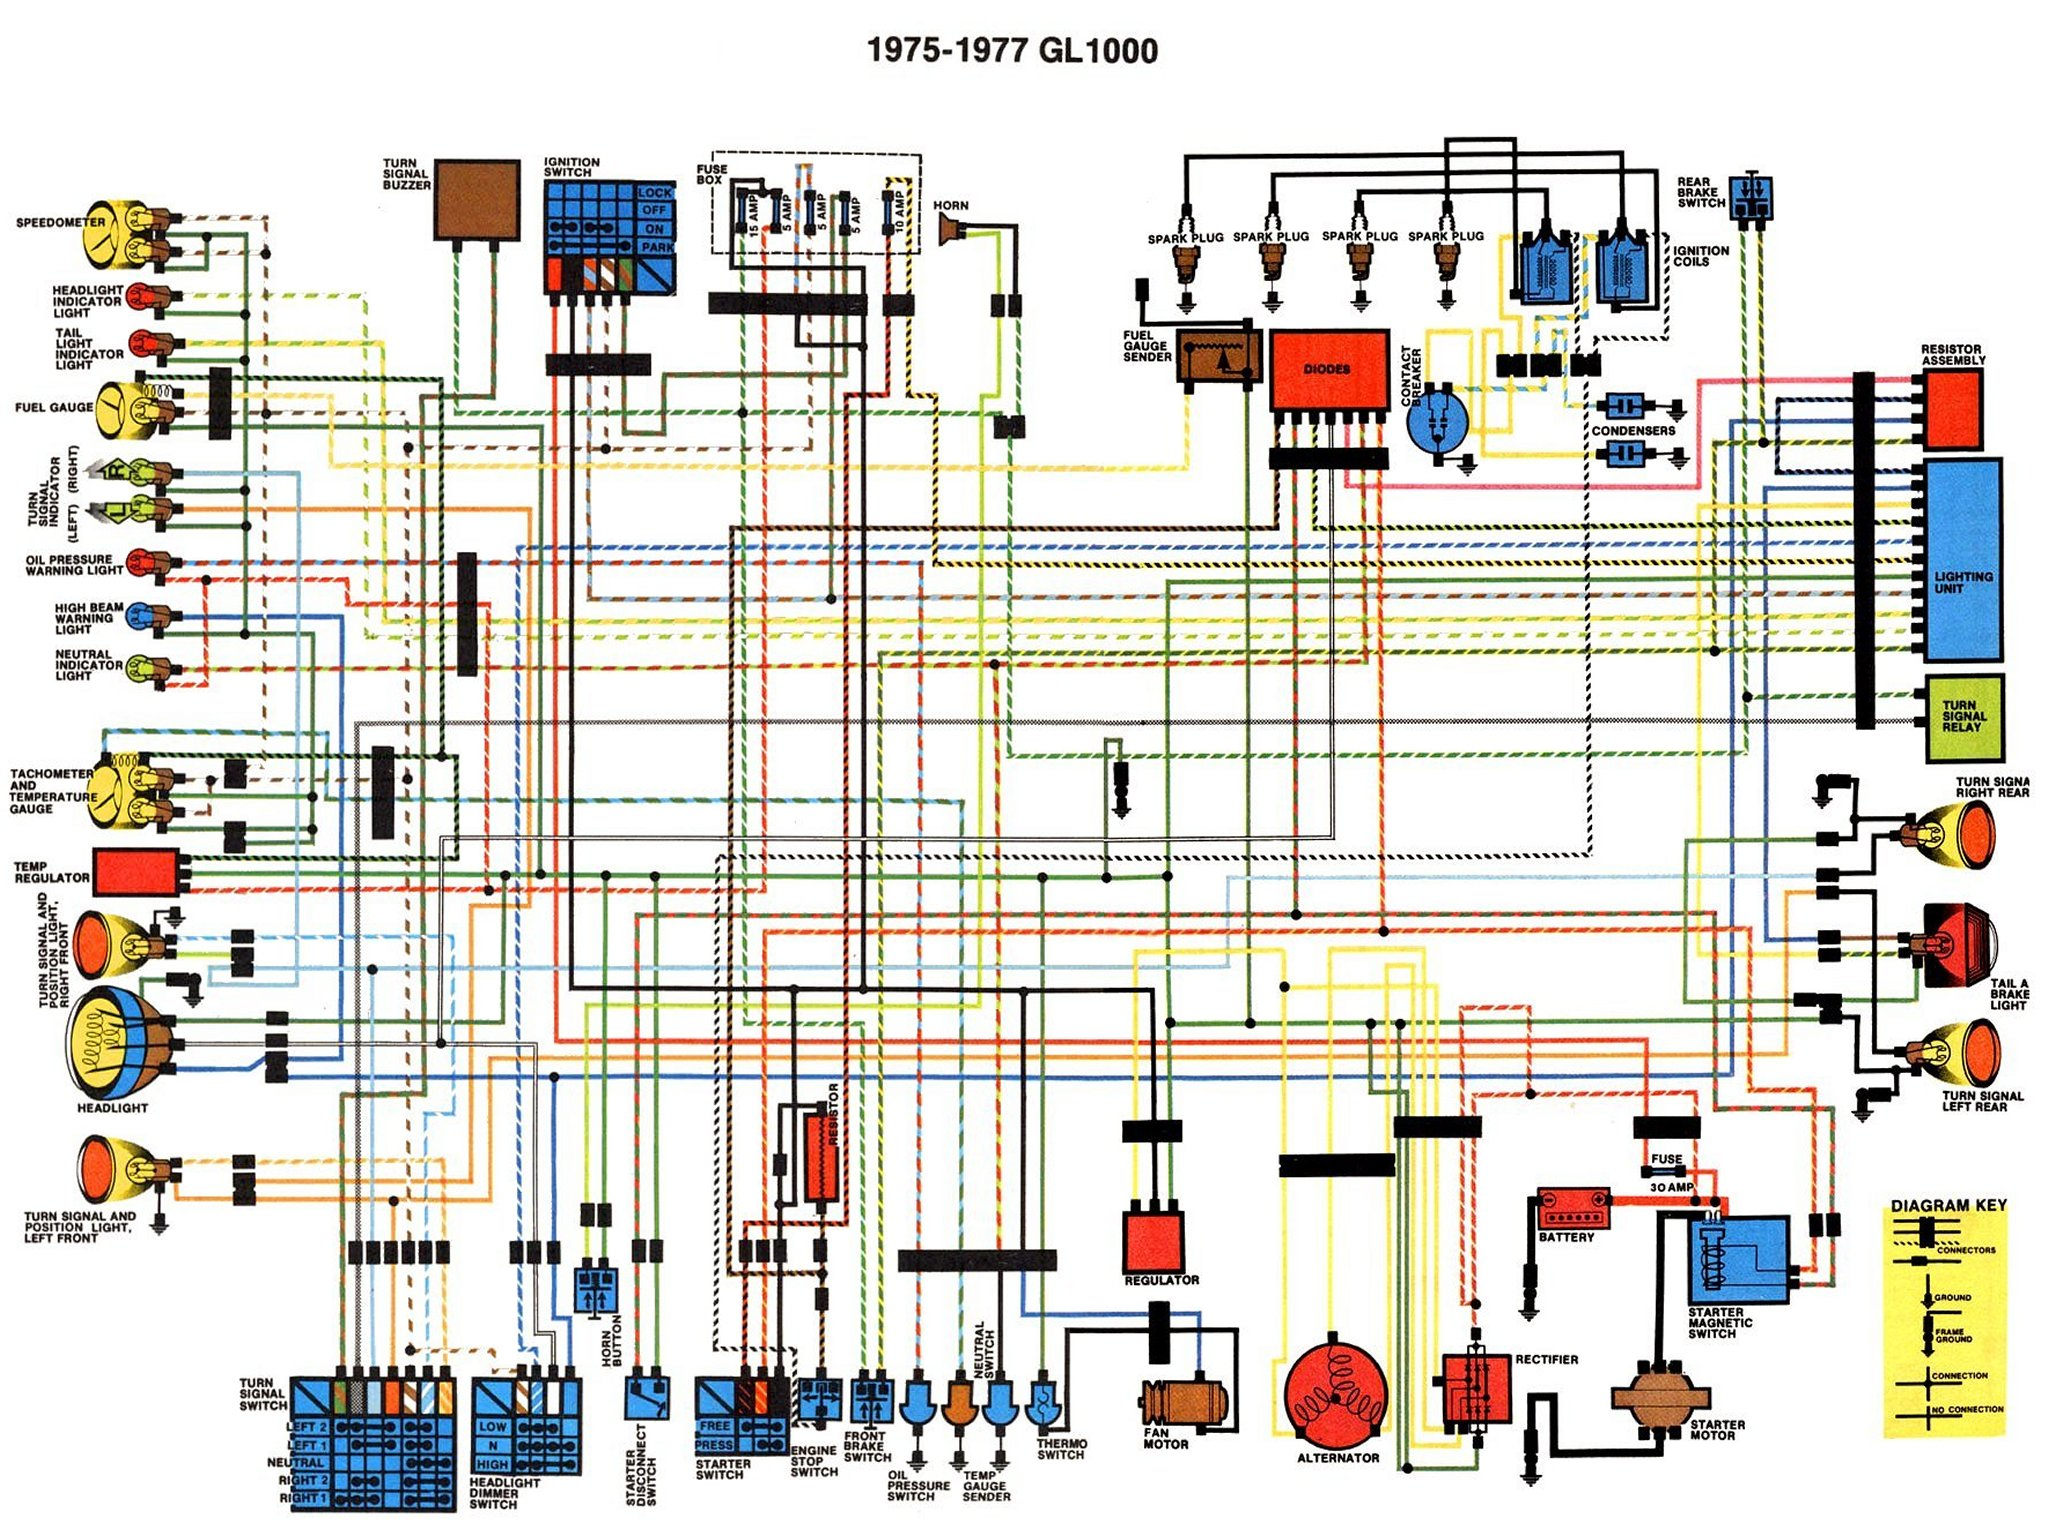 1975 cb750 wiring diagram #18 1971 Honda 750 Four Wiring-Diagram 1975 cb750 wiring diagram